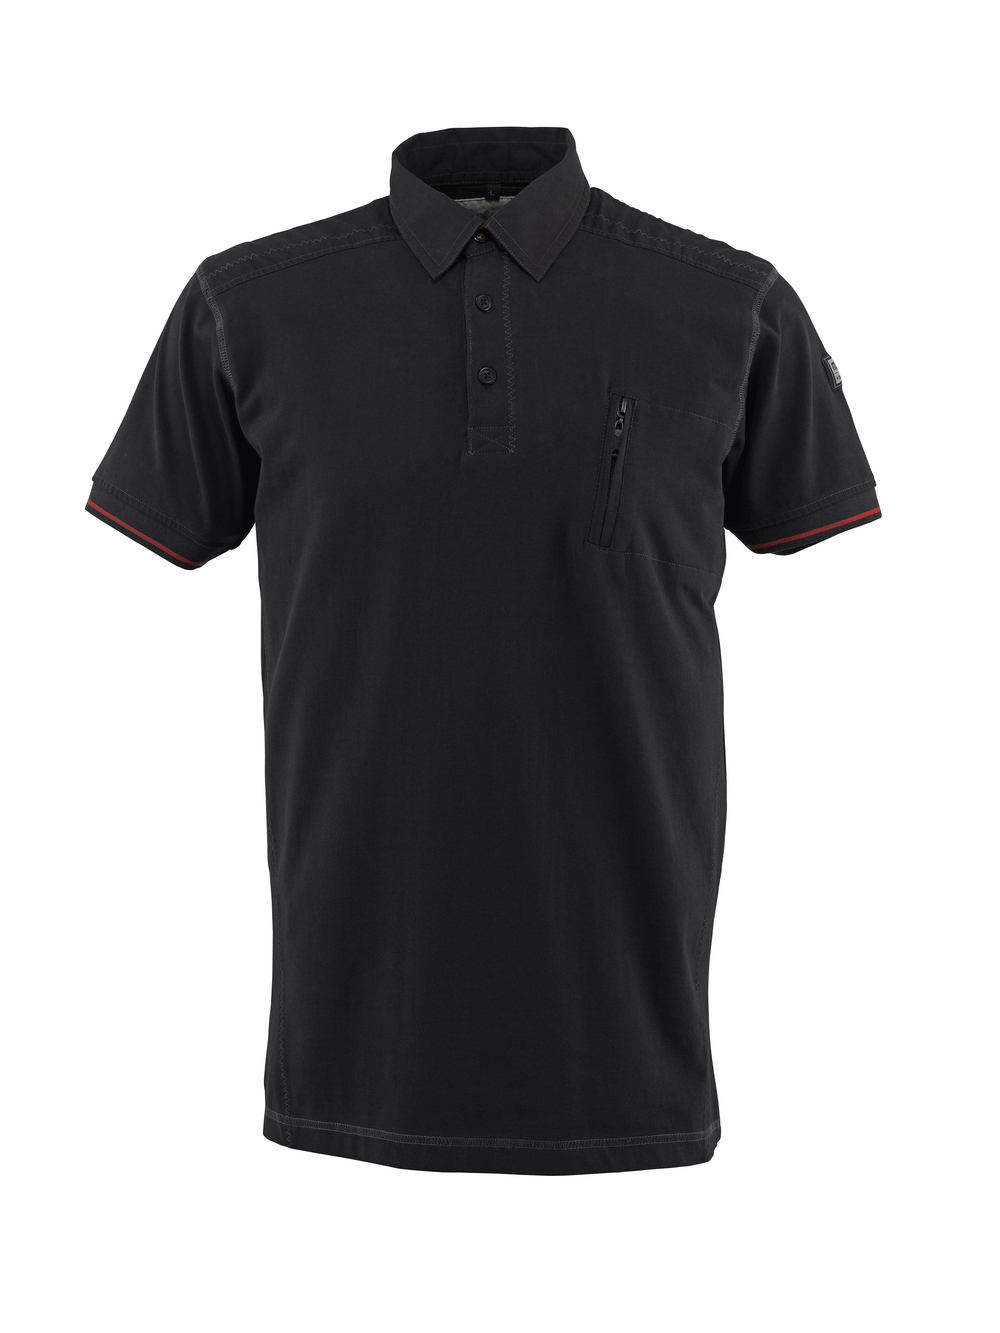 50351-833-09 Polo Shirt with chest pocket - black